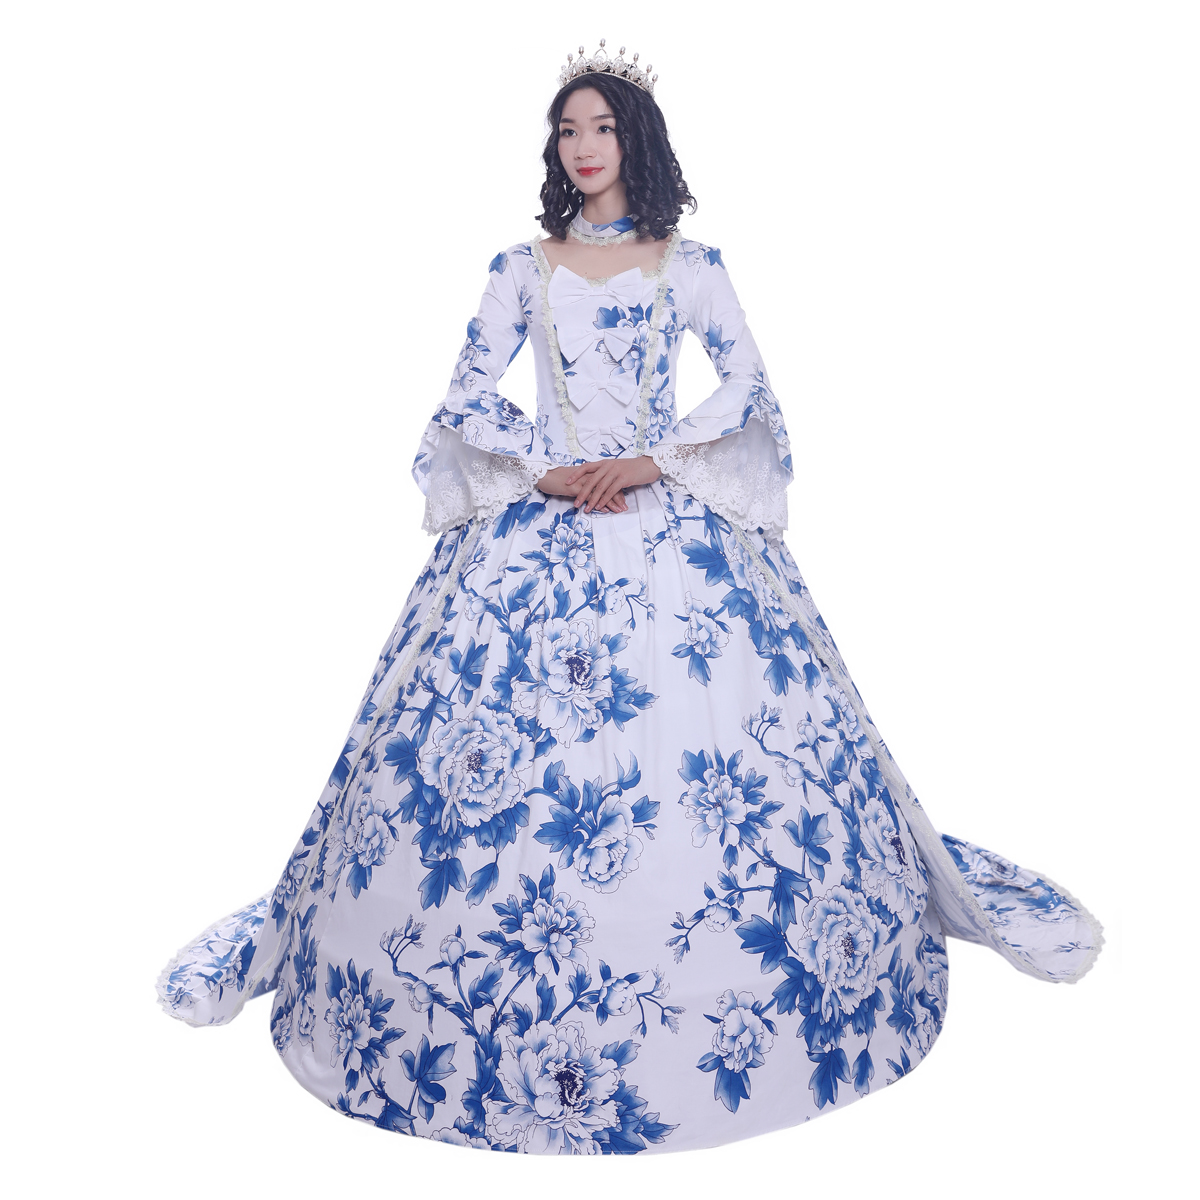 Women's Victorian Rococo Dress Maiden Ball Gown Period Dress Marie Antoinette Party Dresses Renaissance Princess Costumes